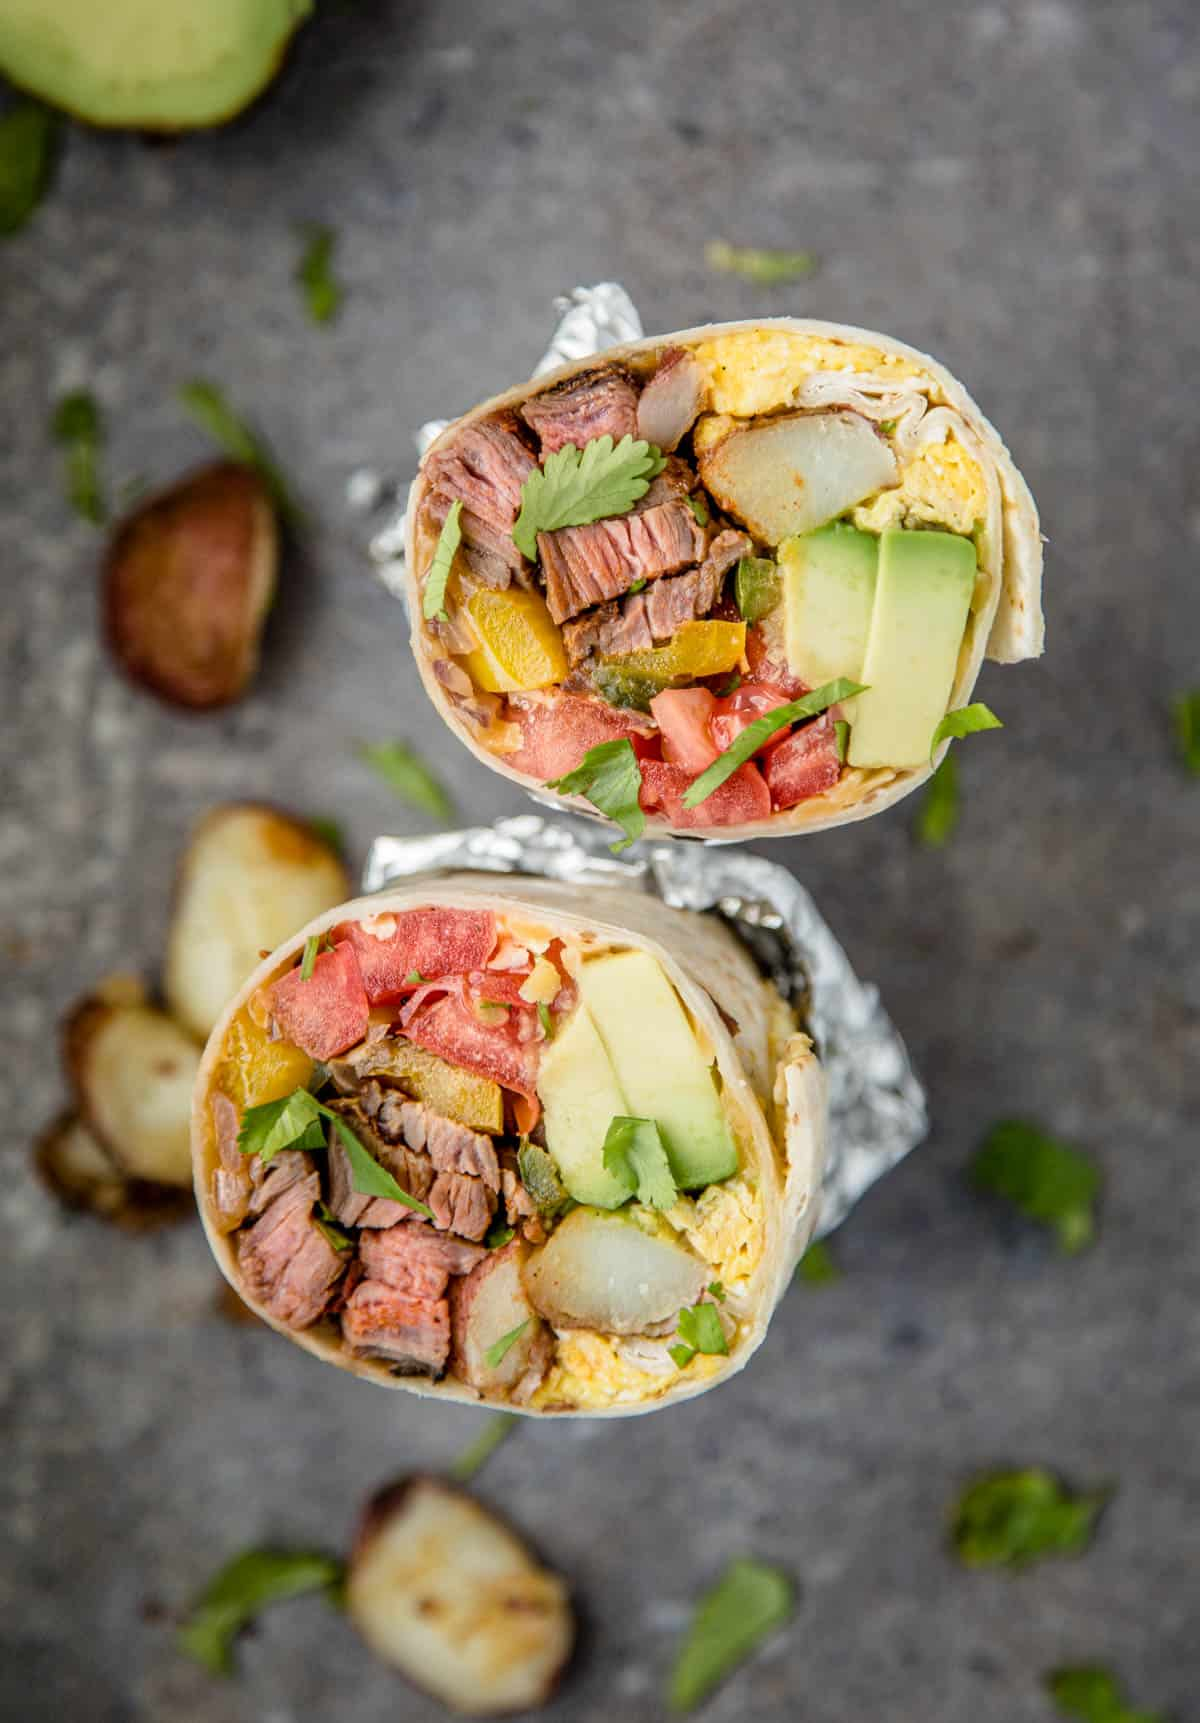 A Steak and Egg Breakfast Burrito cut in half